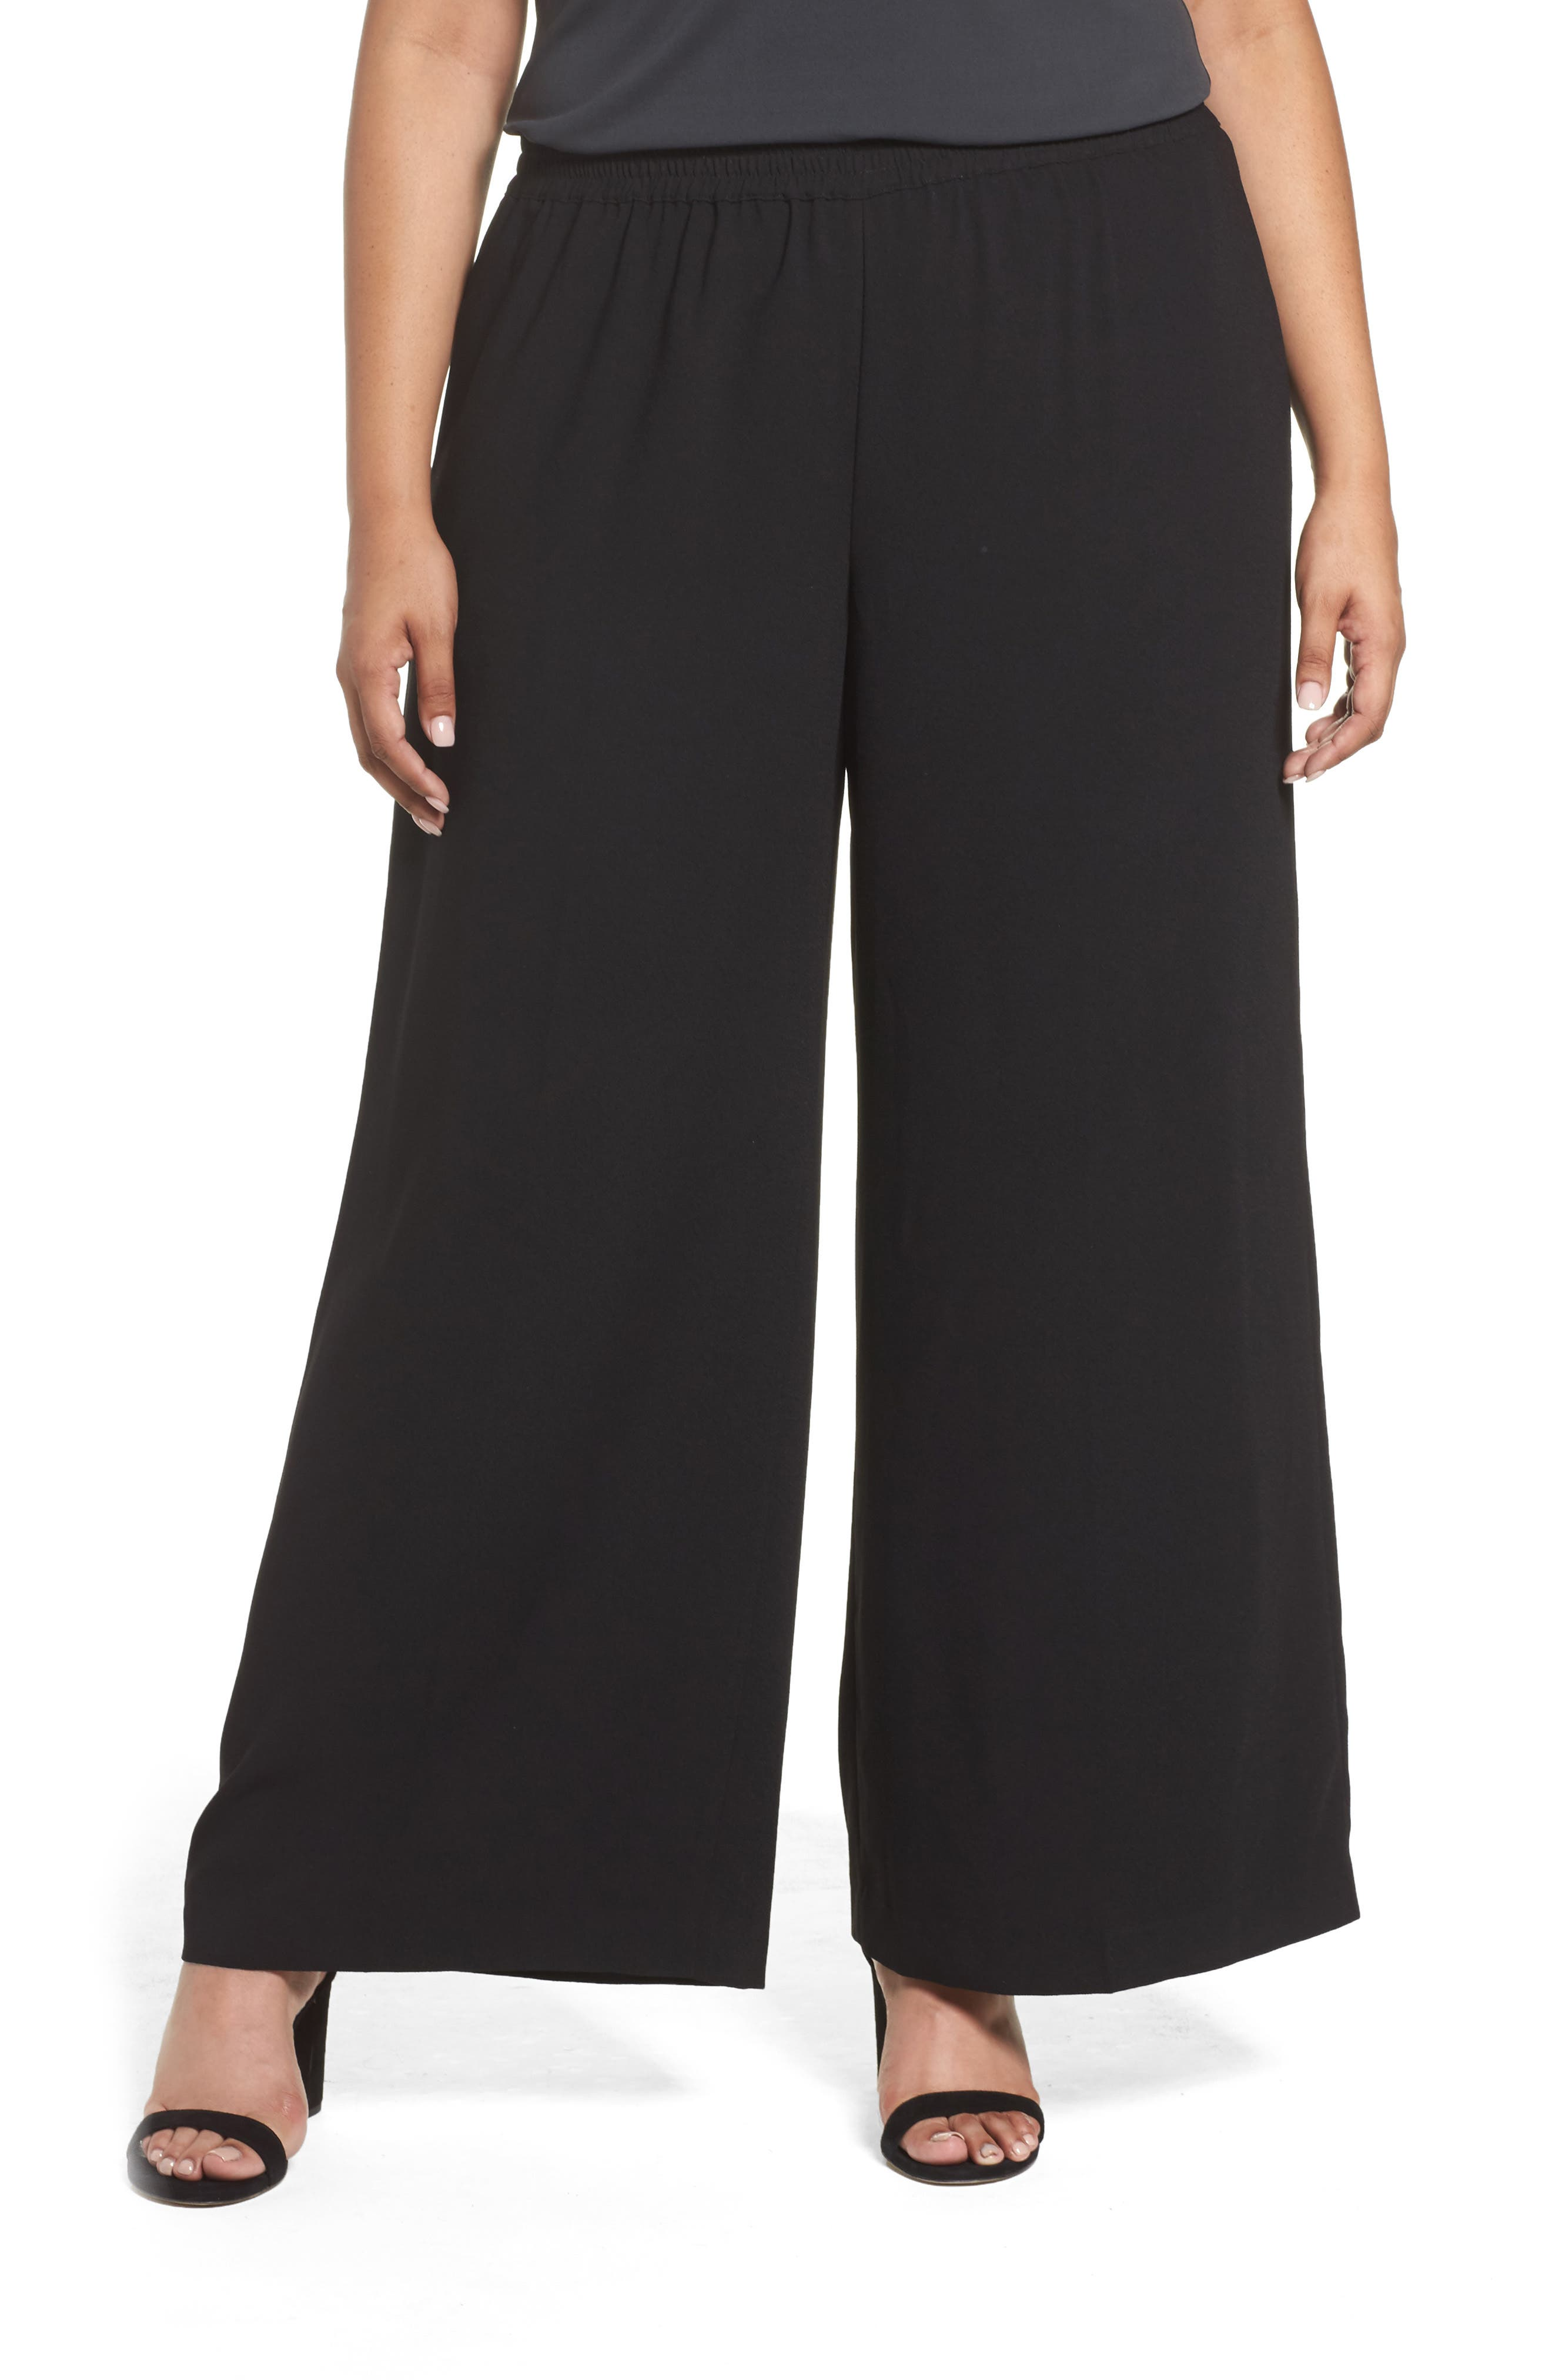 Alternate Image 1 Selected - Vince Camuto Wide Leg Crepe Pants (Plus Size)